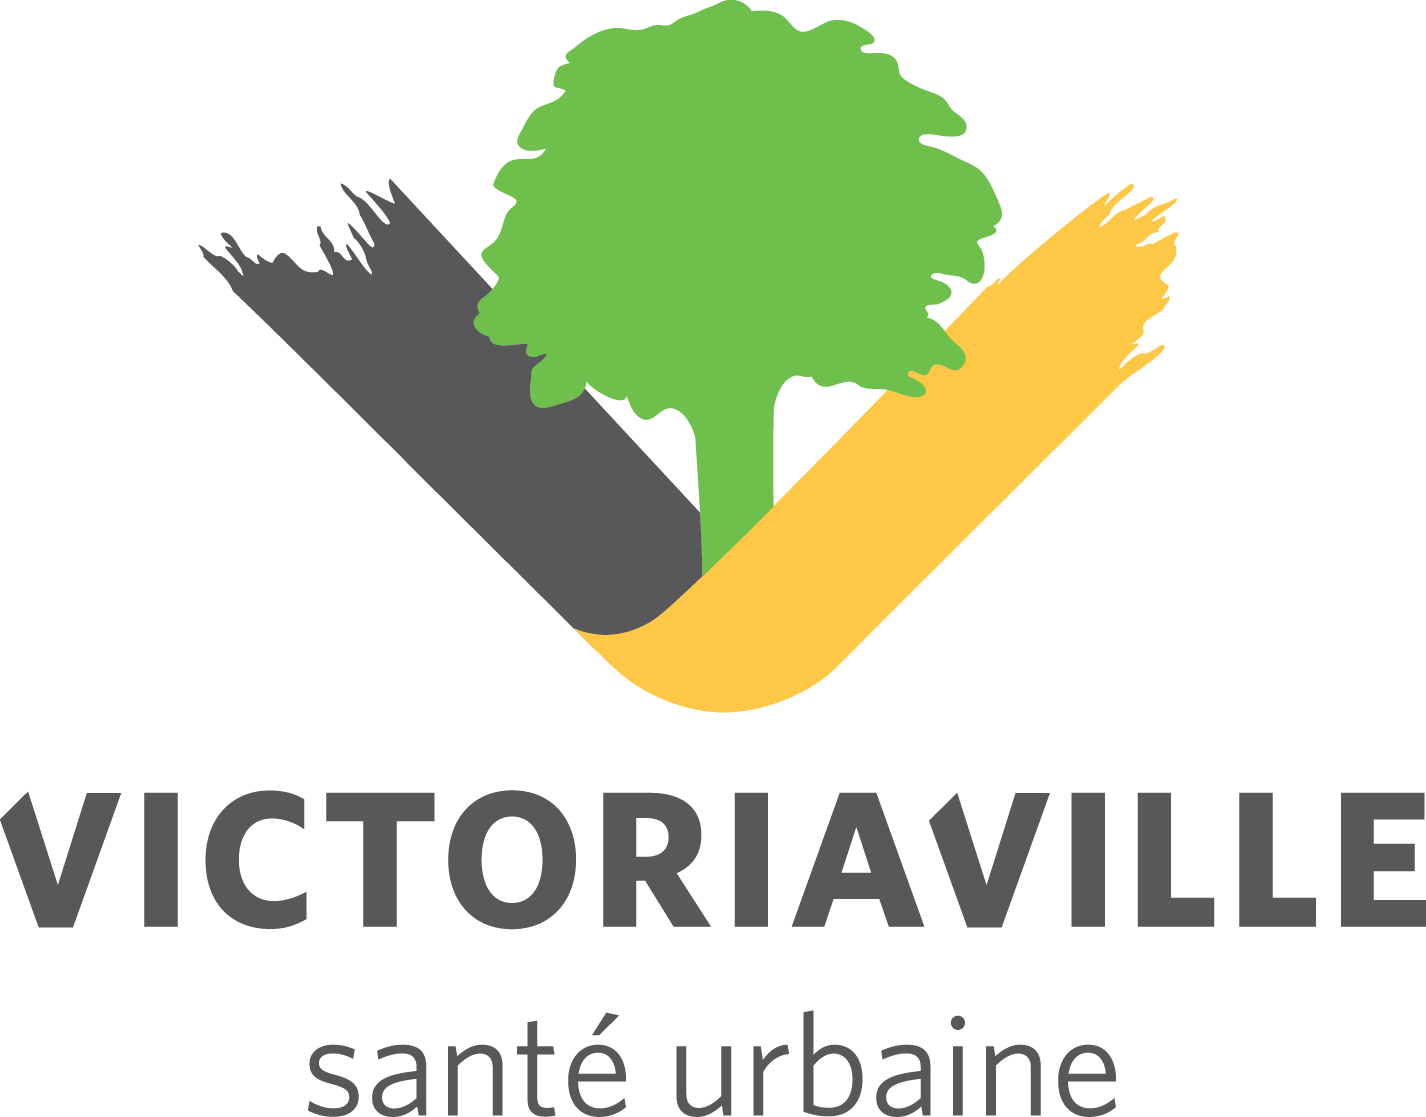 victoriaville dating site Free to join & browse - 1000's of latino men in victoriaville, quebec - interracial dating, relationships & marriage with guys & males online.